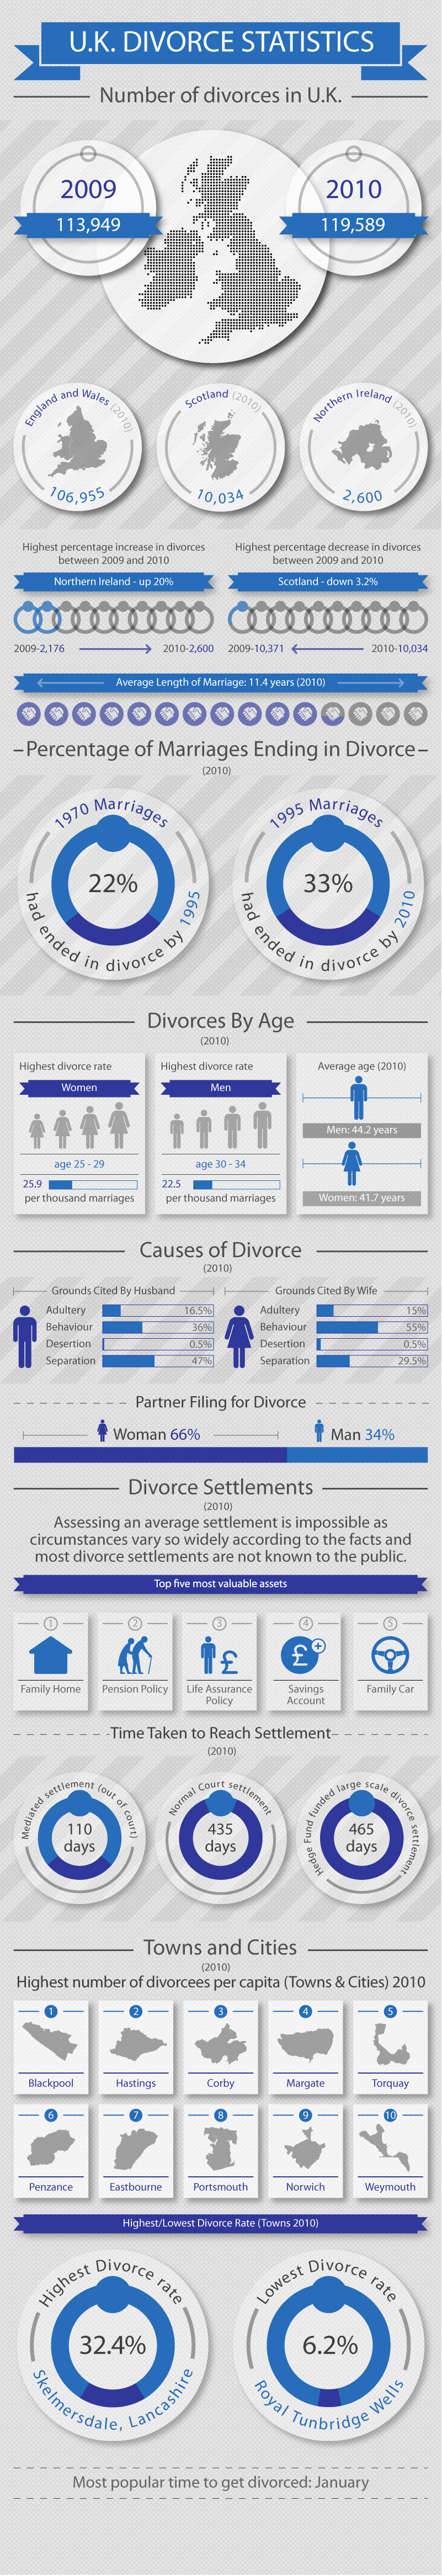 UK Divorce Statistics